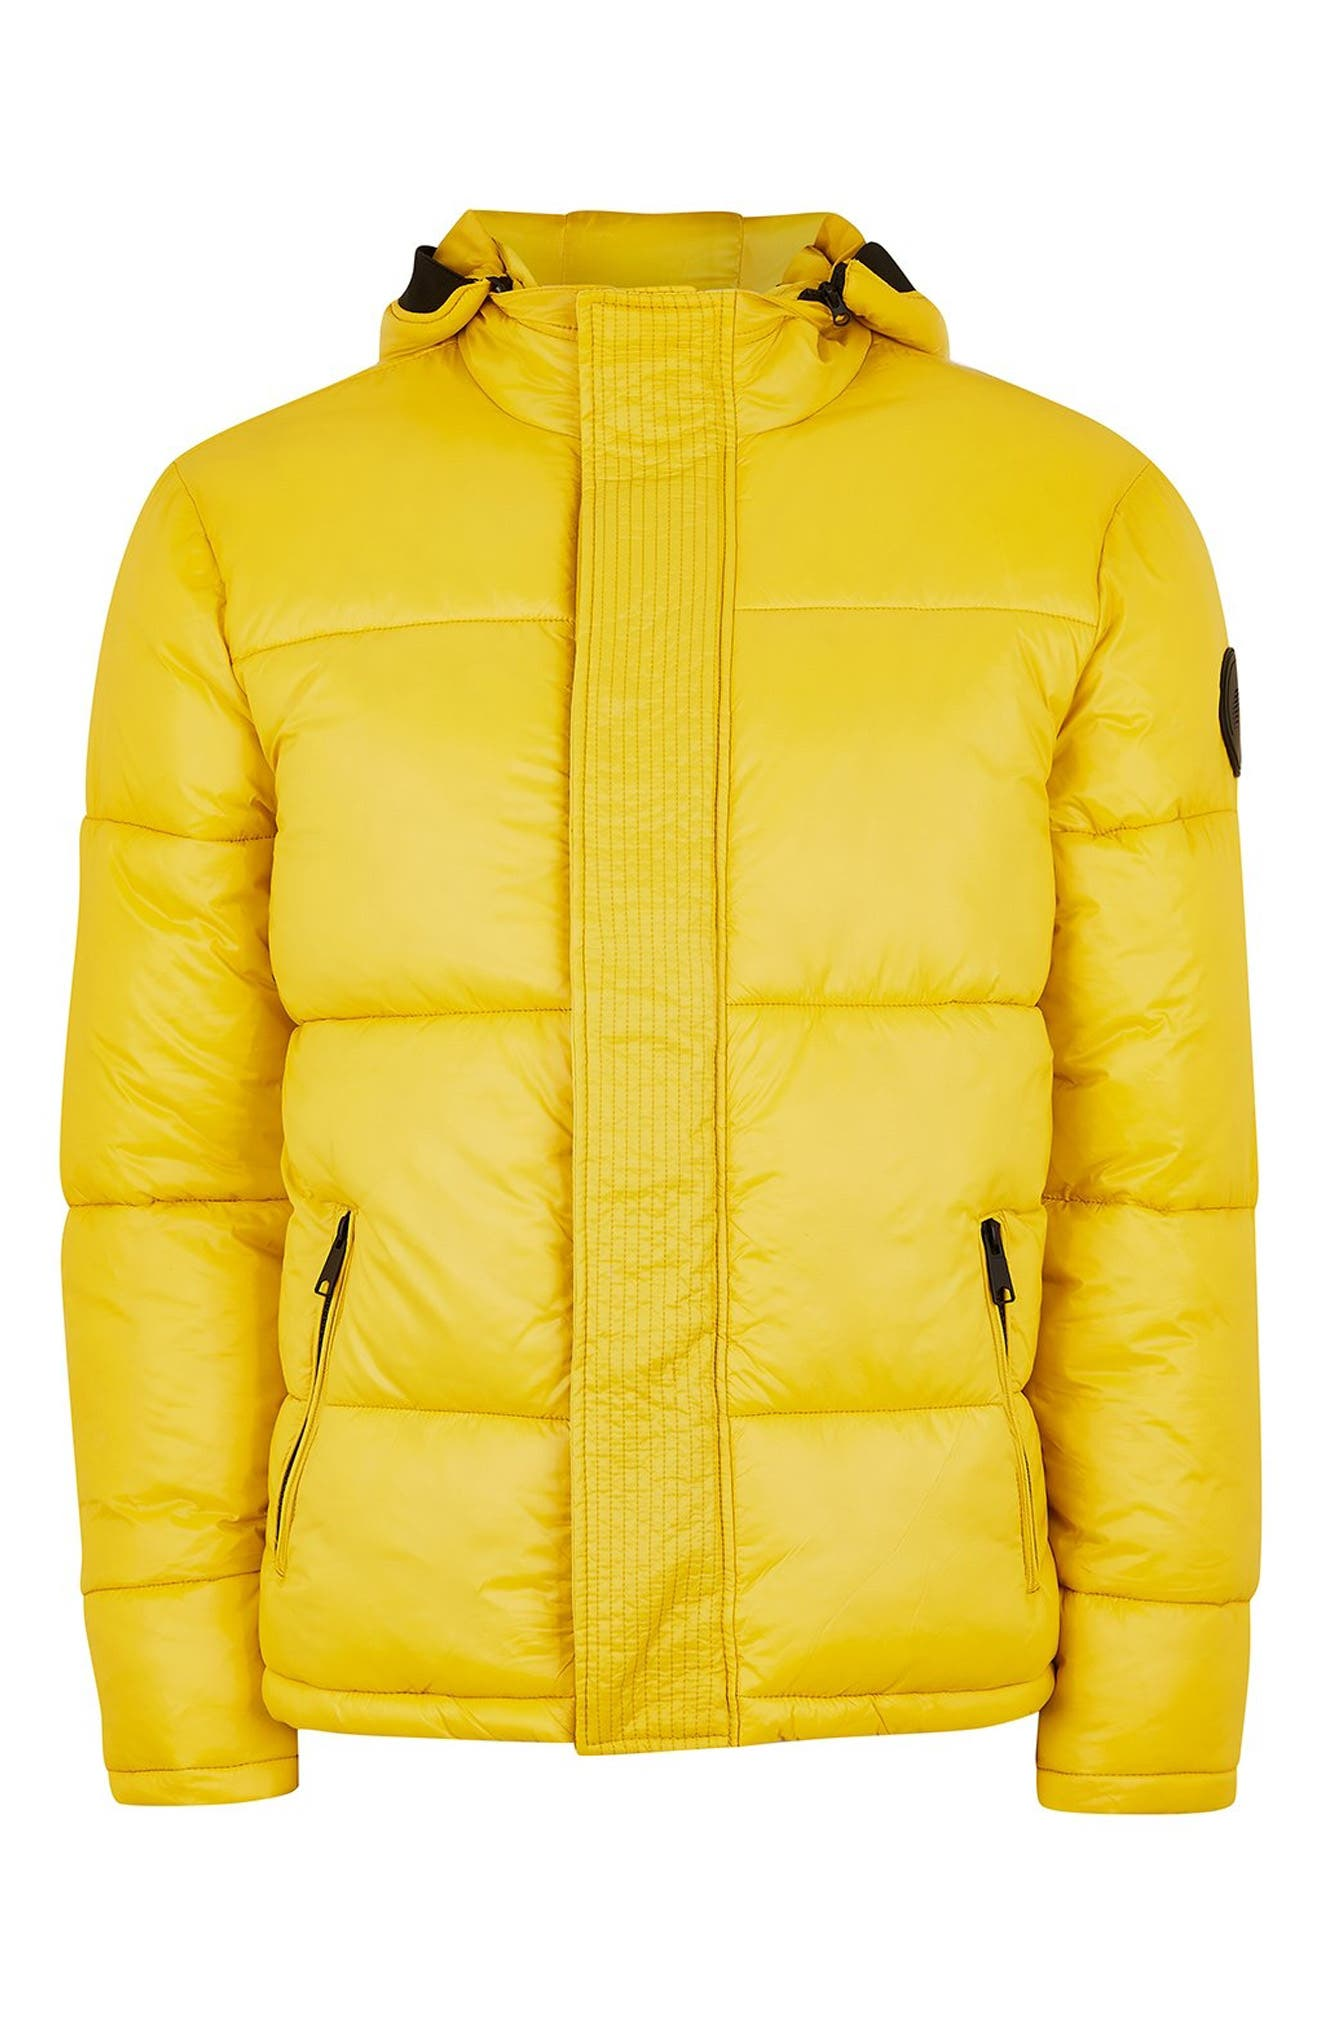 Capi Classic Fit Puffer Jacket,                             Alternate thumbnail 5, color,                             YELLOW